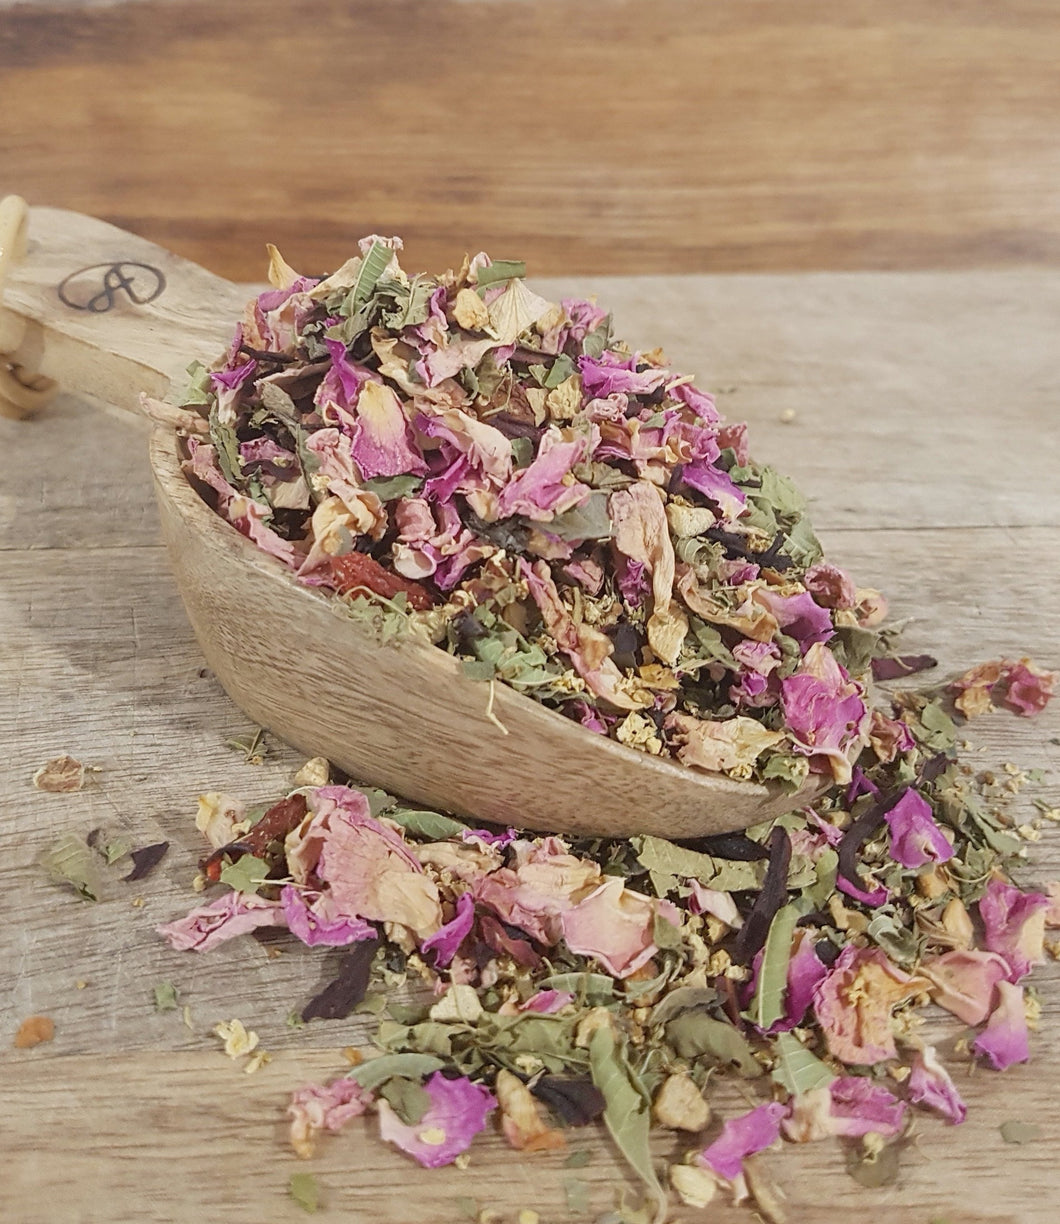 A fragrant, quenching and uplifting herbal tea for those hot summer days.